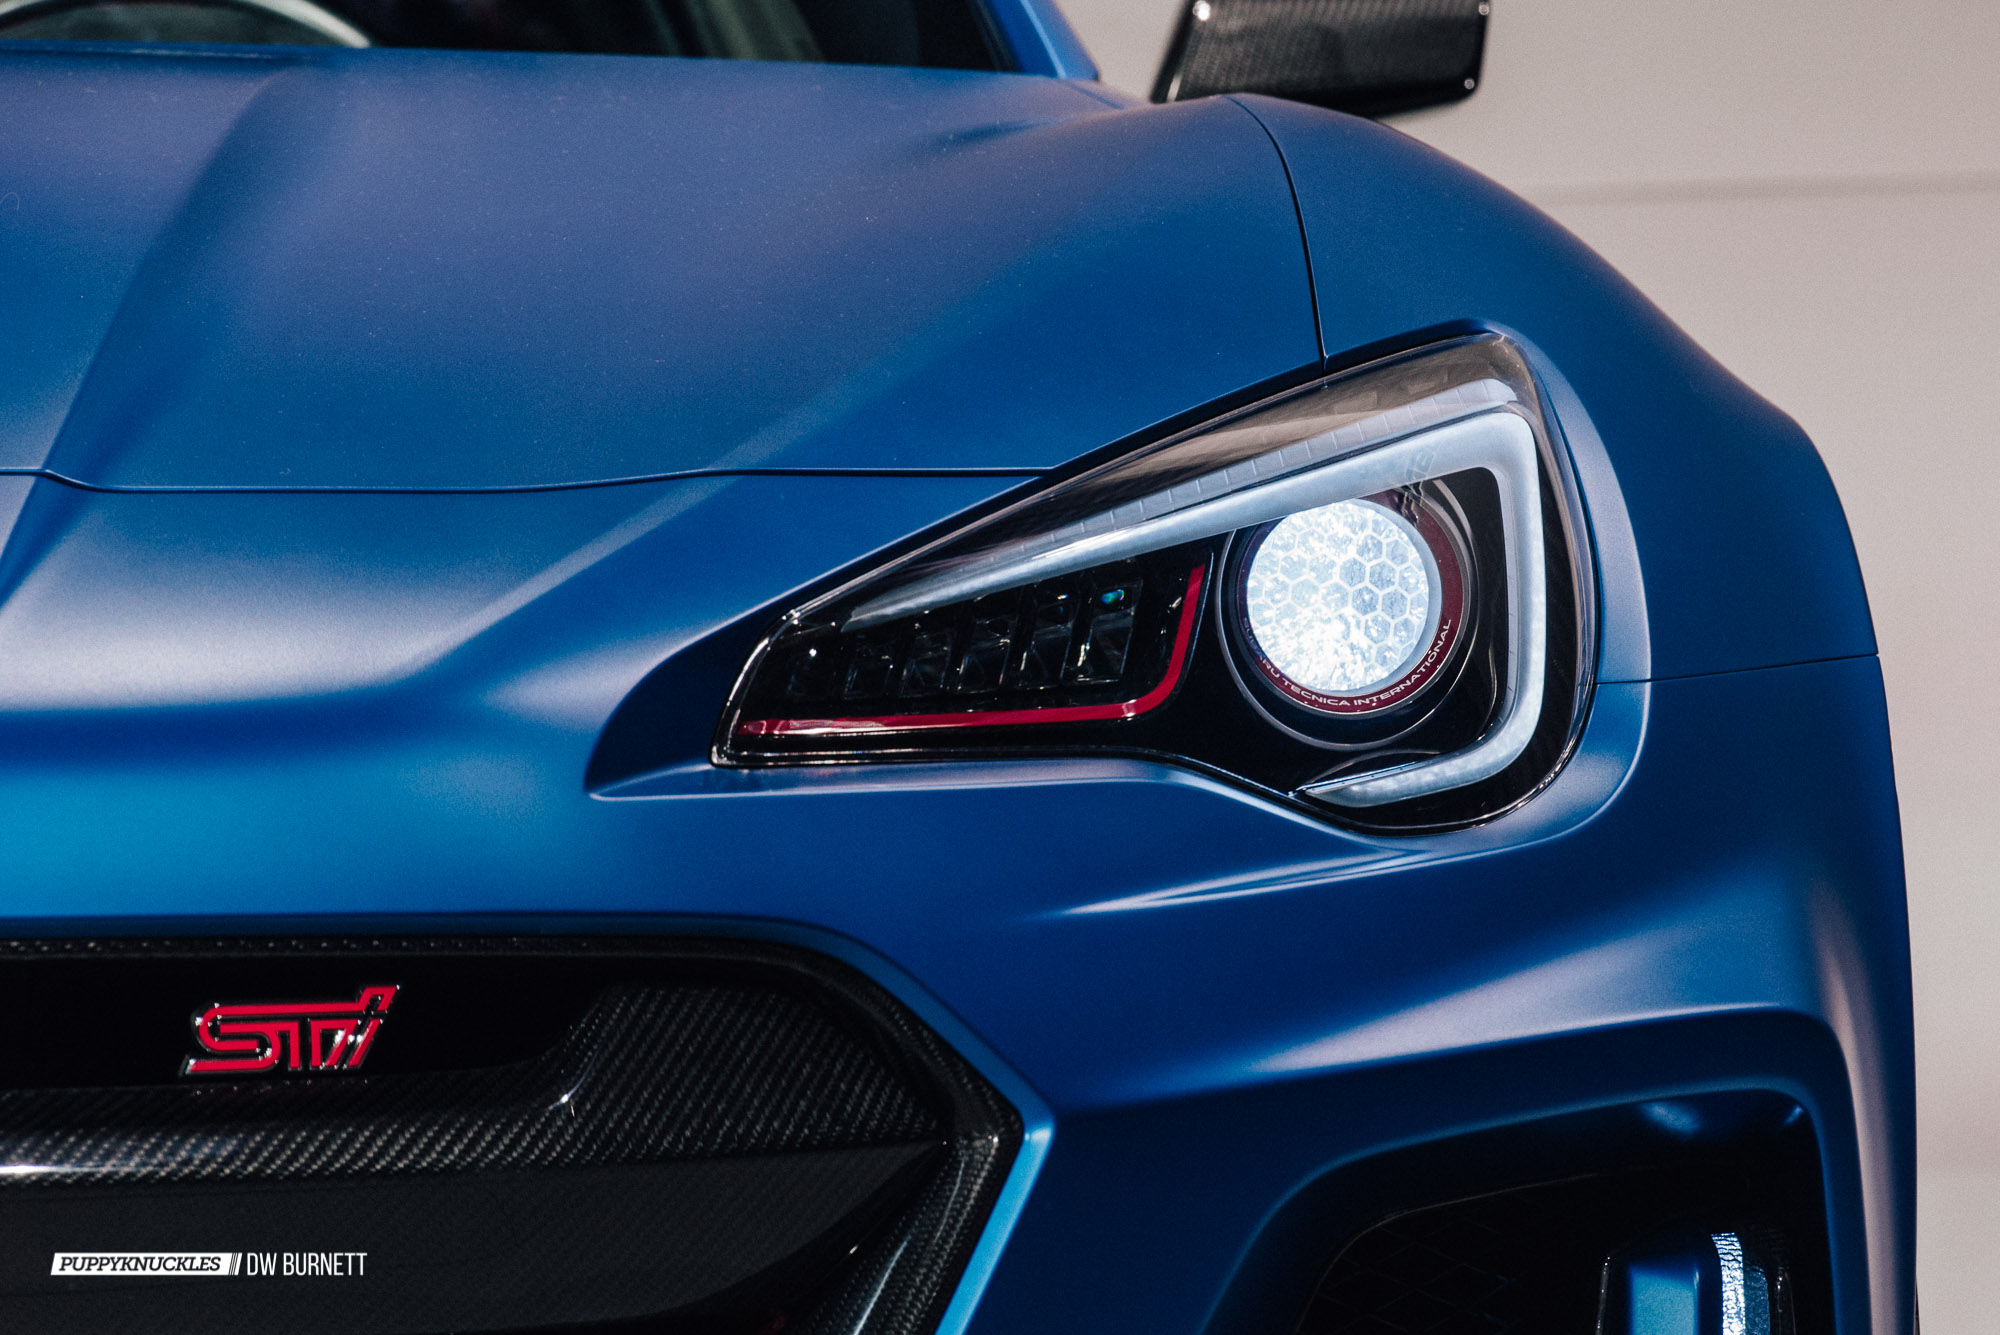 Big Wave Wallpaper Hd The Subaru Brz Sti Performance Concept Is A Little Monster